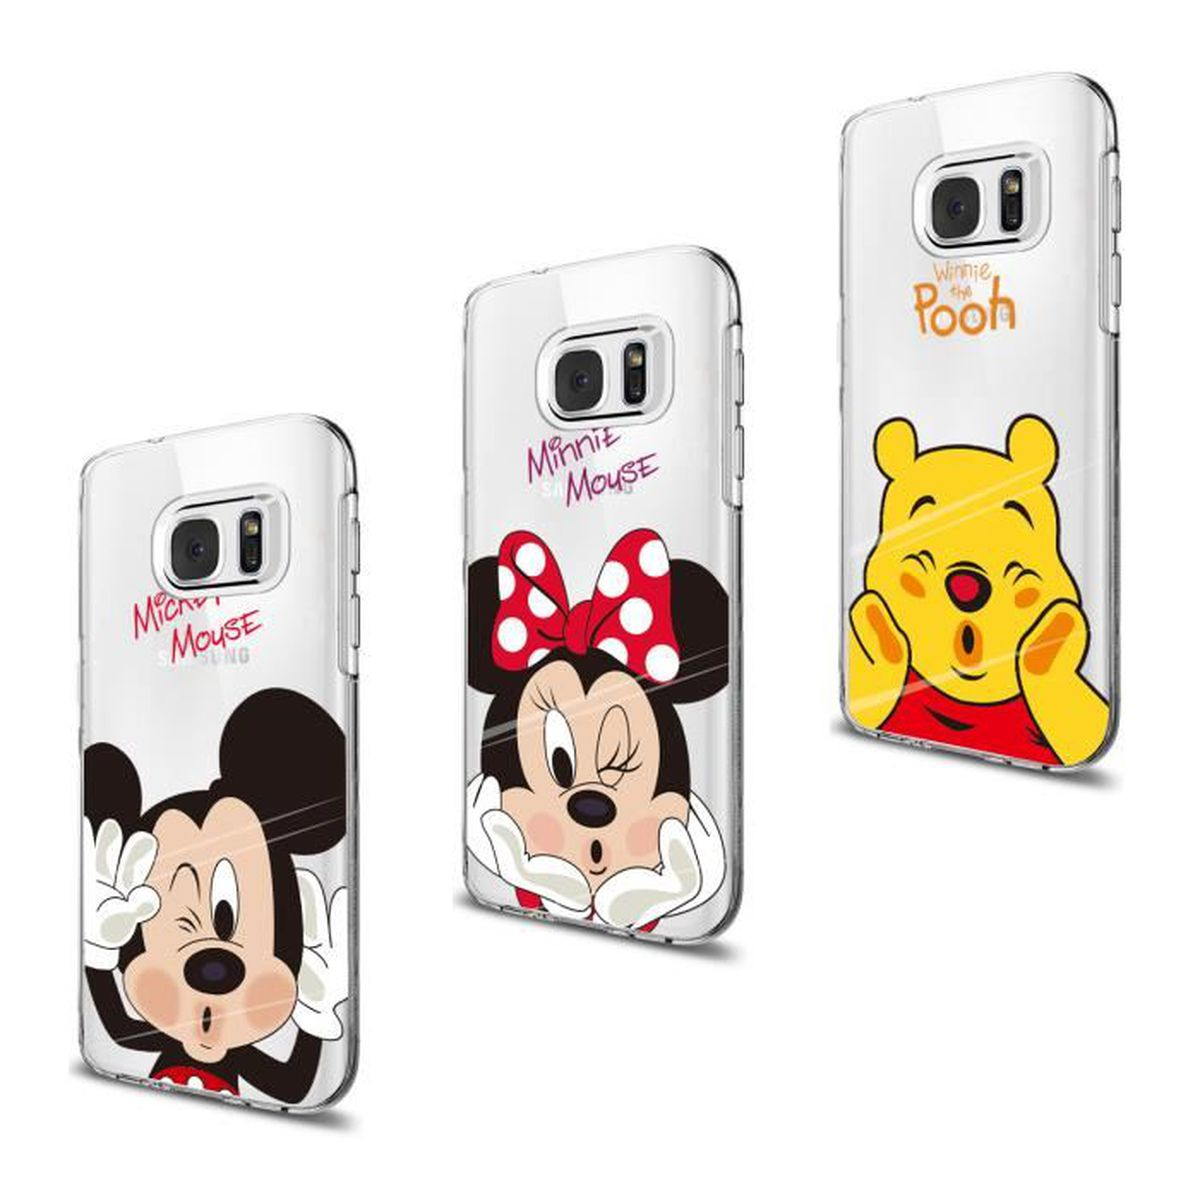 samsung galaxy s7 edge coque disney